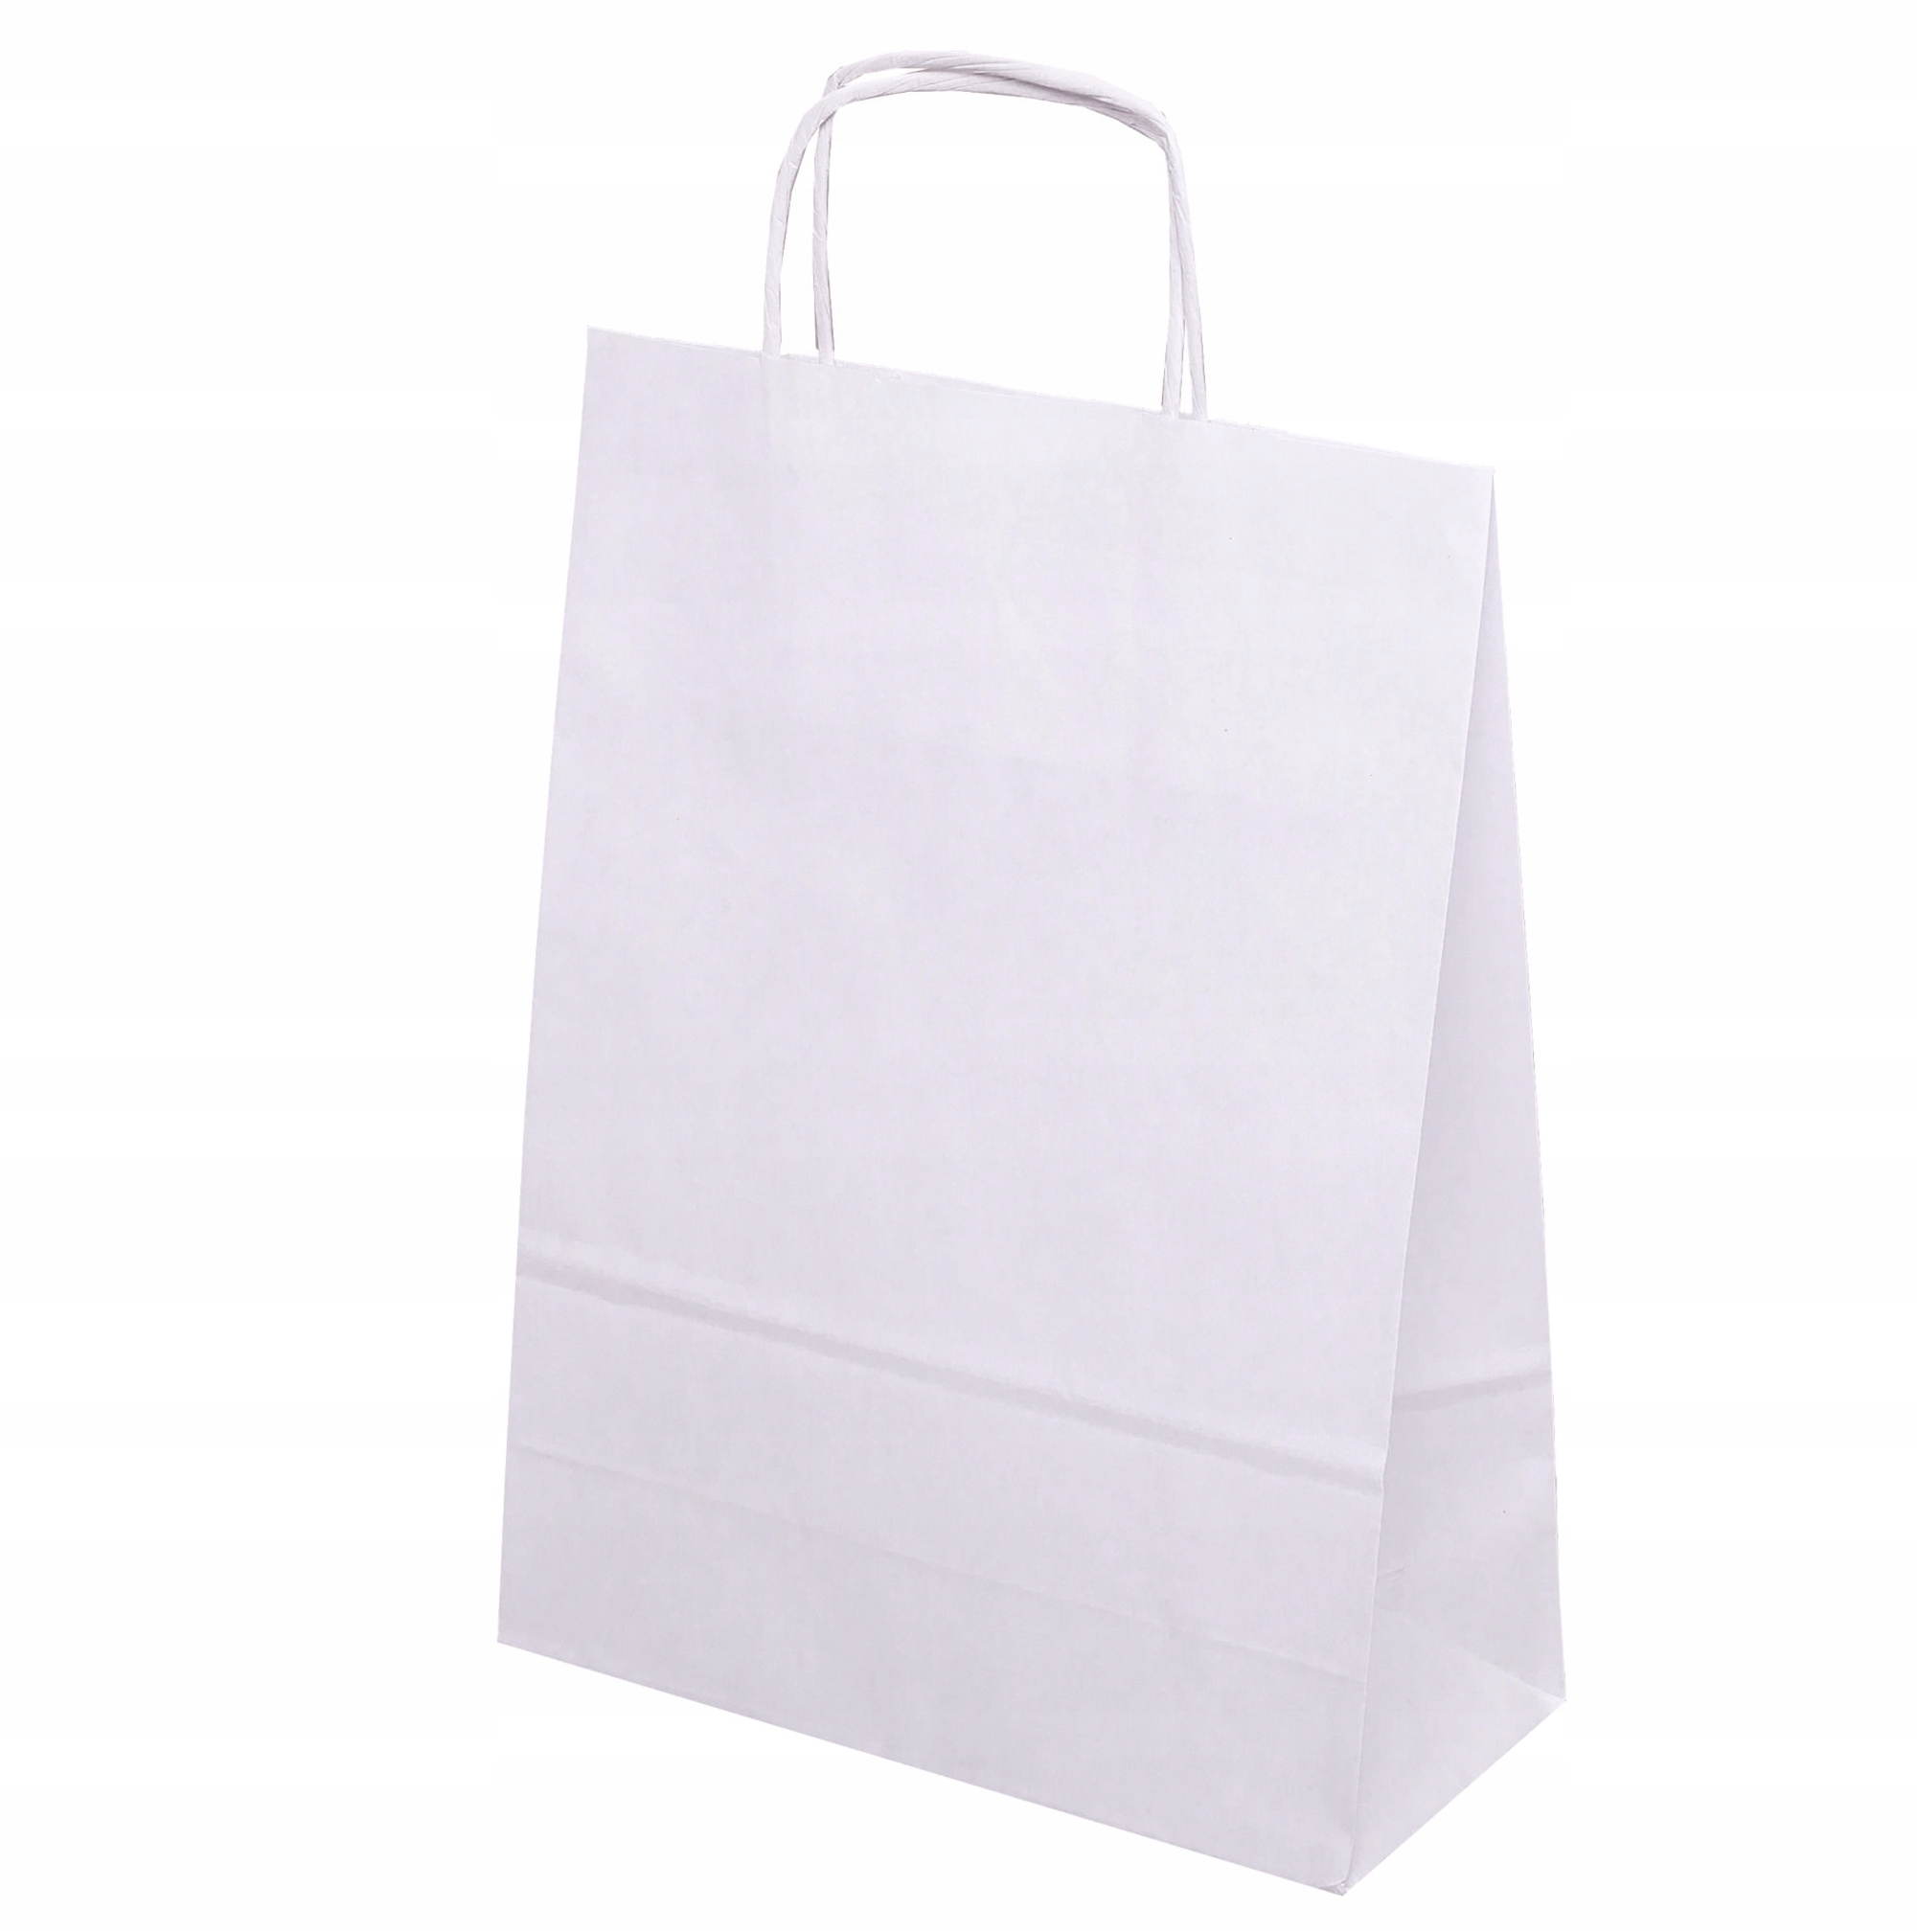 Item Handbag PAPER 24x10x32 cm WHITE 50 PCs